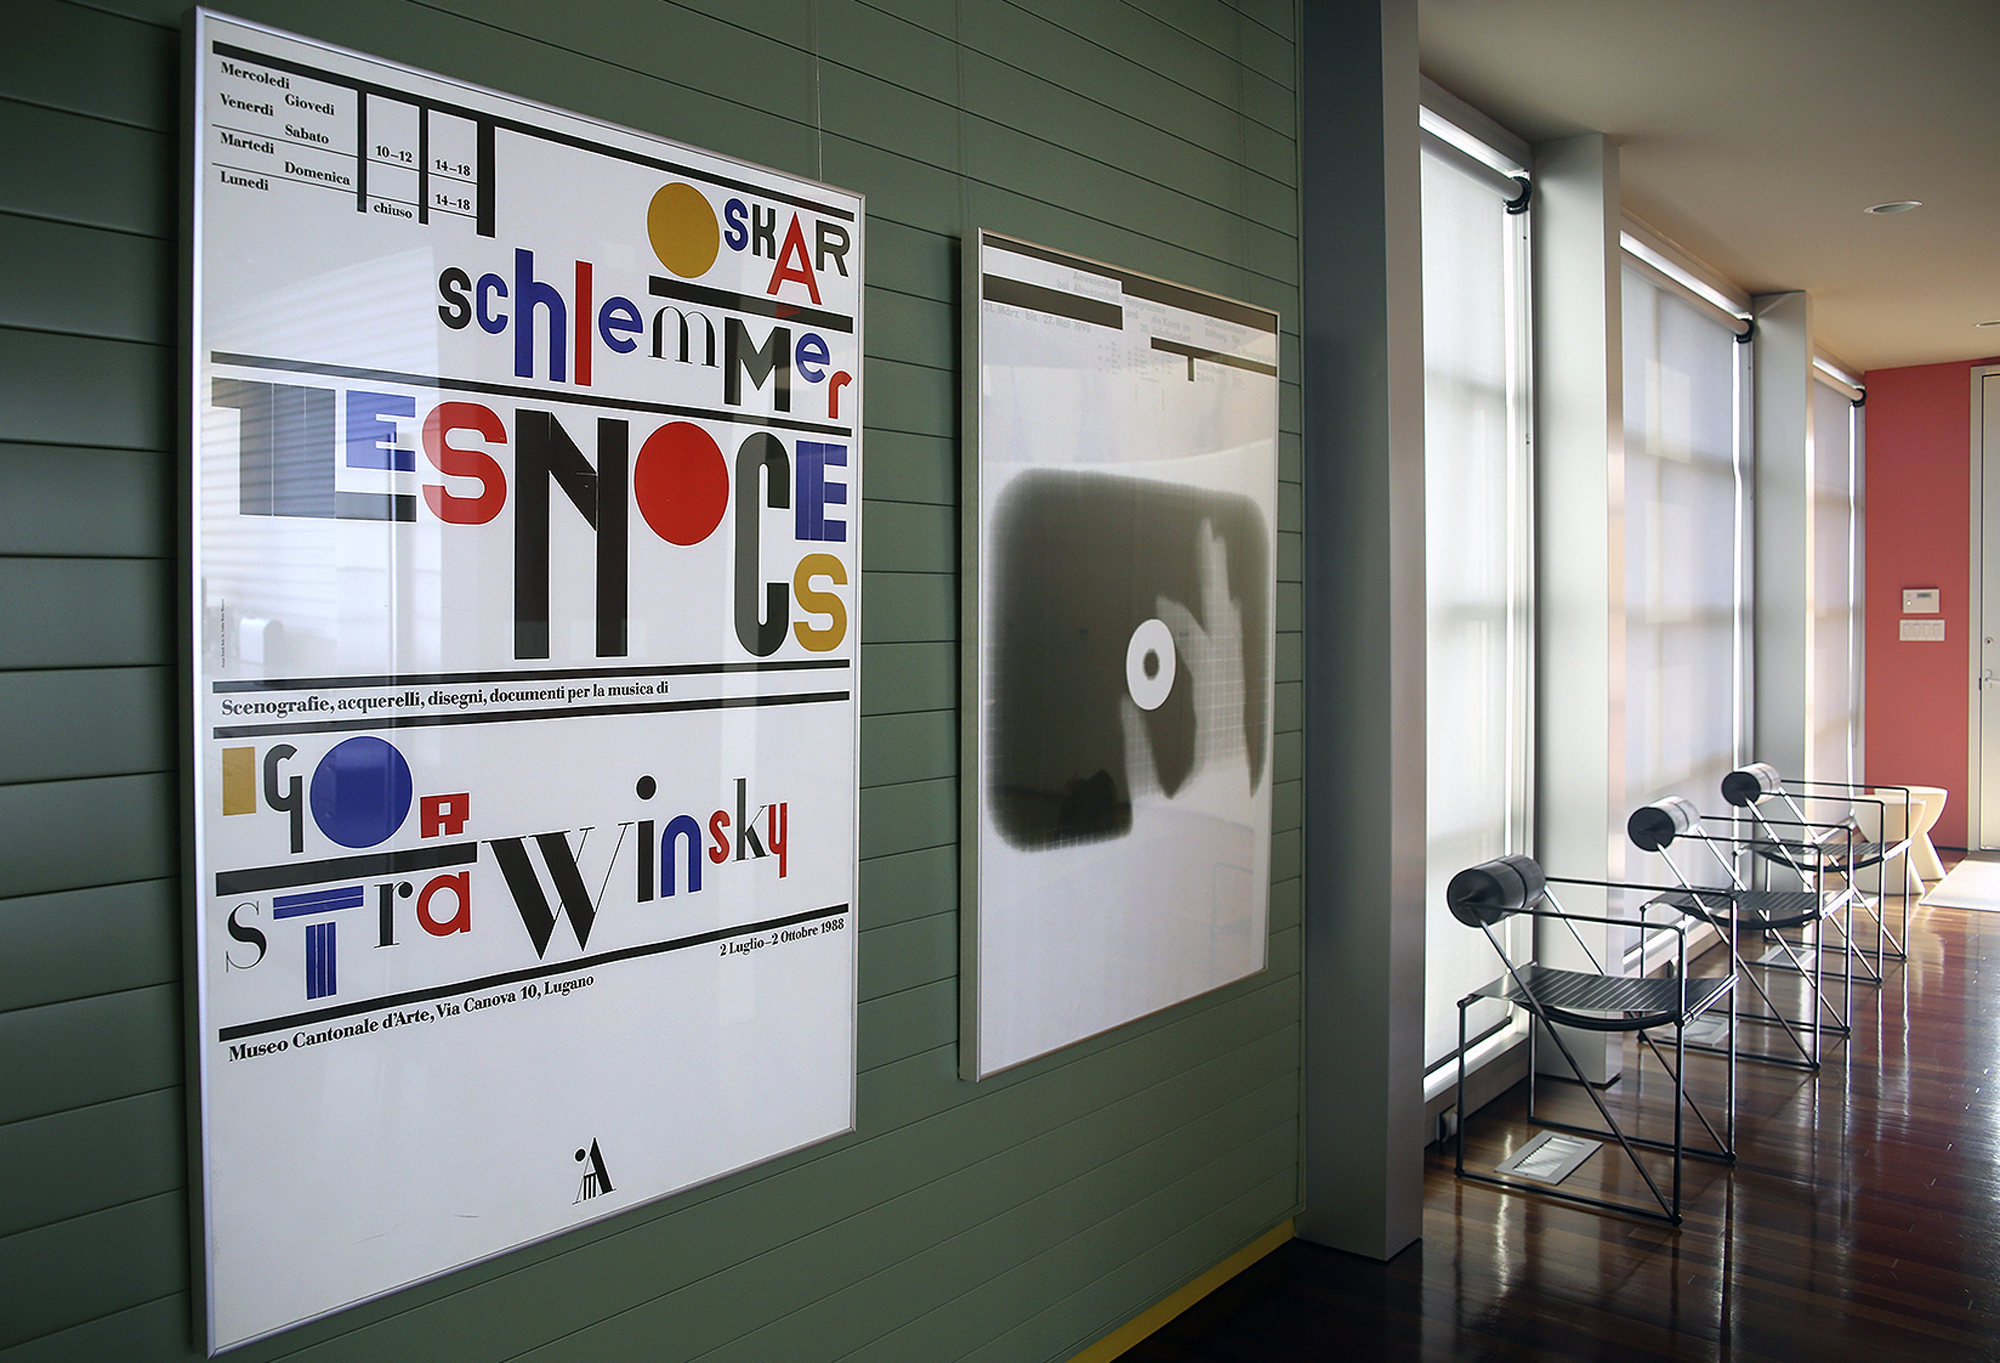 Typographic posters and modern chairs against window wall; green, red, blue, black